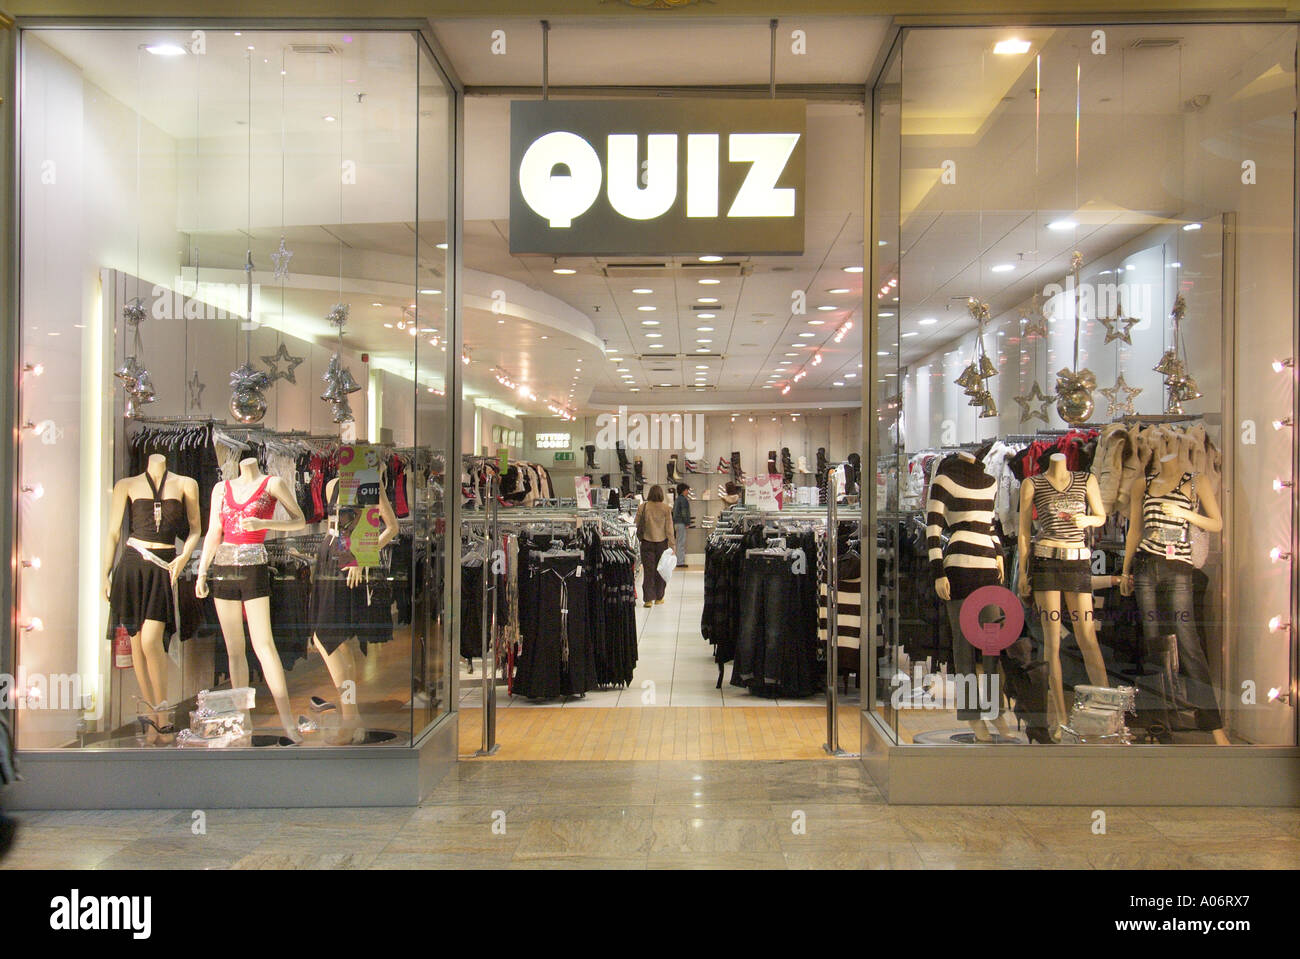 c7de1a3331a Quiz shop store Trafford centre UK United Kingdom England Europe GB Great  Britain EU European Union